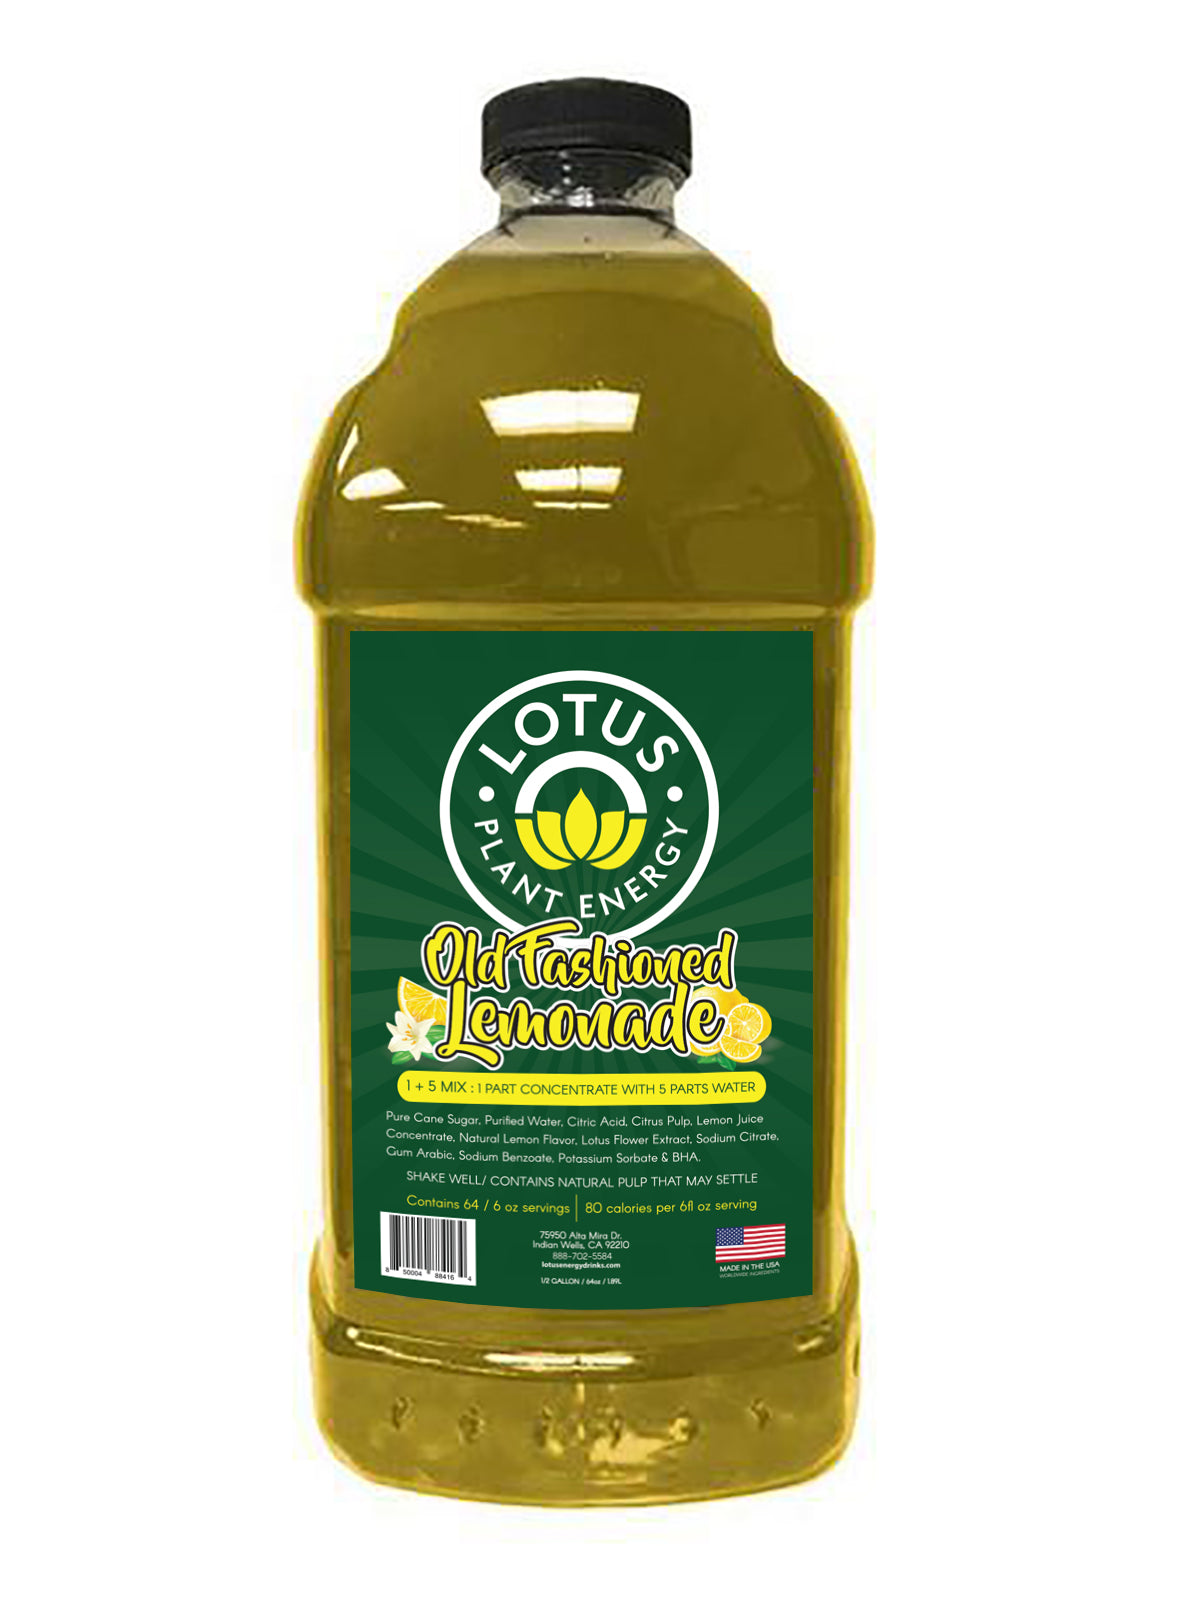 Lotus Lemonade Concentrate / No Caffeine / 1/2 Gallon Pump & Serve